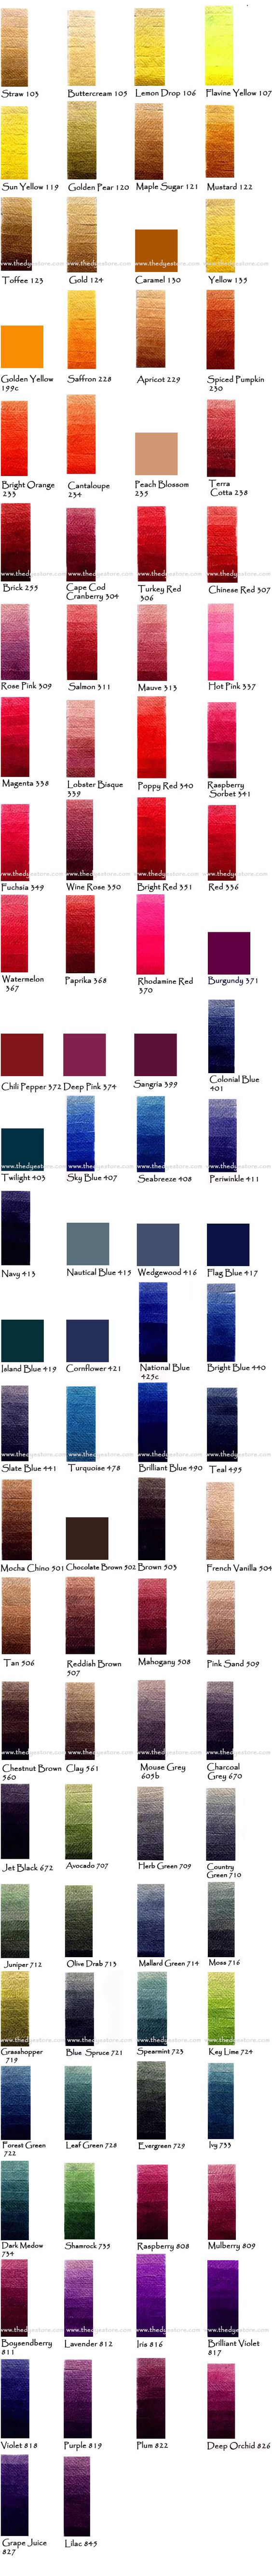 Color chart for pro chem dye dying to dye pinterest colour color chart for pro chem dye dying to dye pinterest colour chart chart and patterns nvjuhfo Images